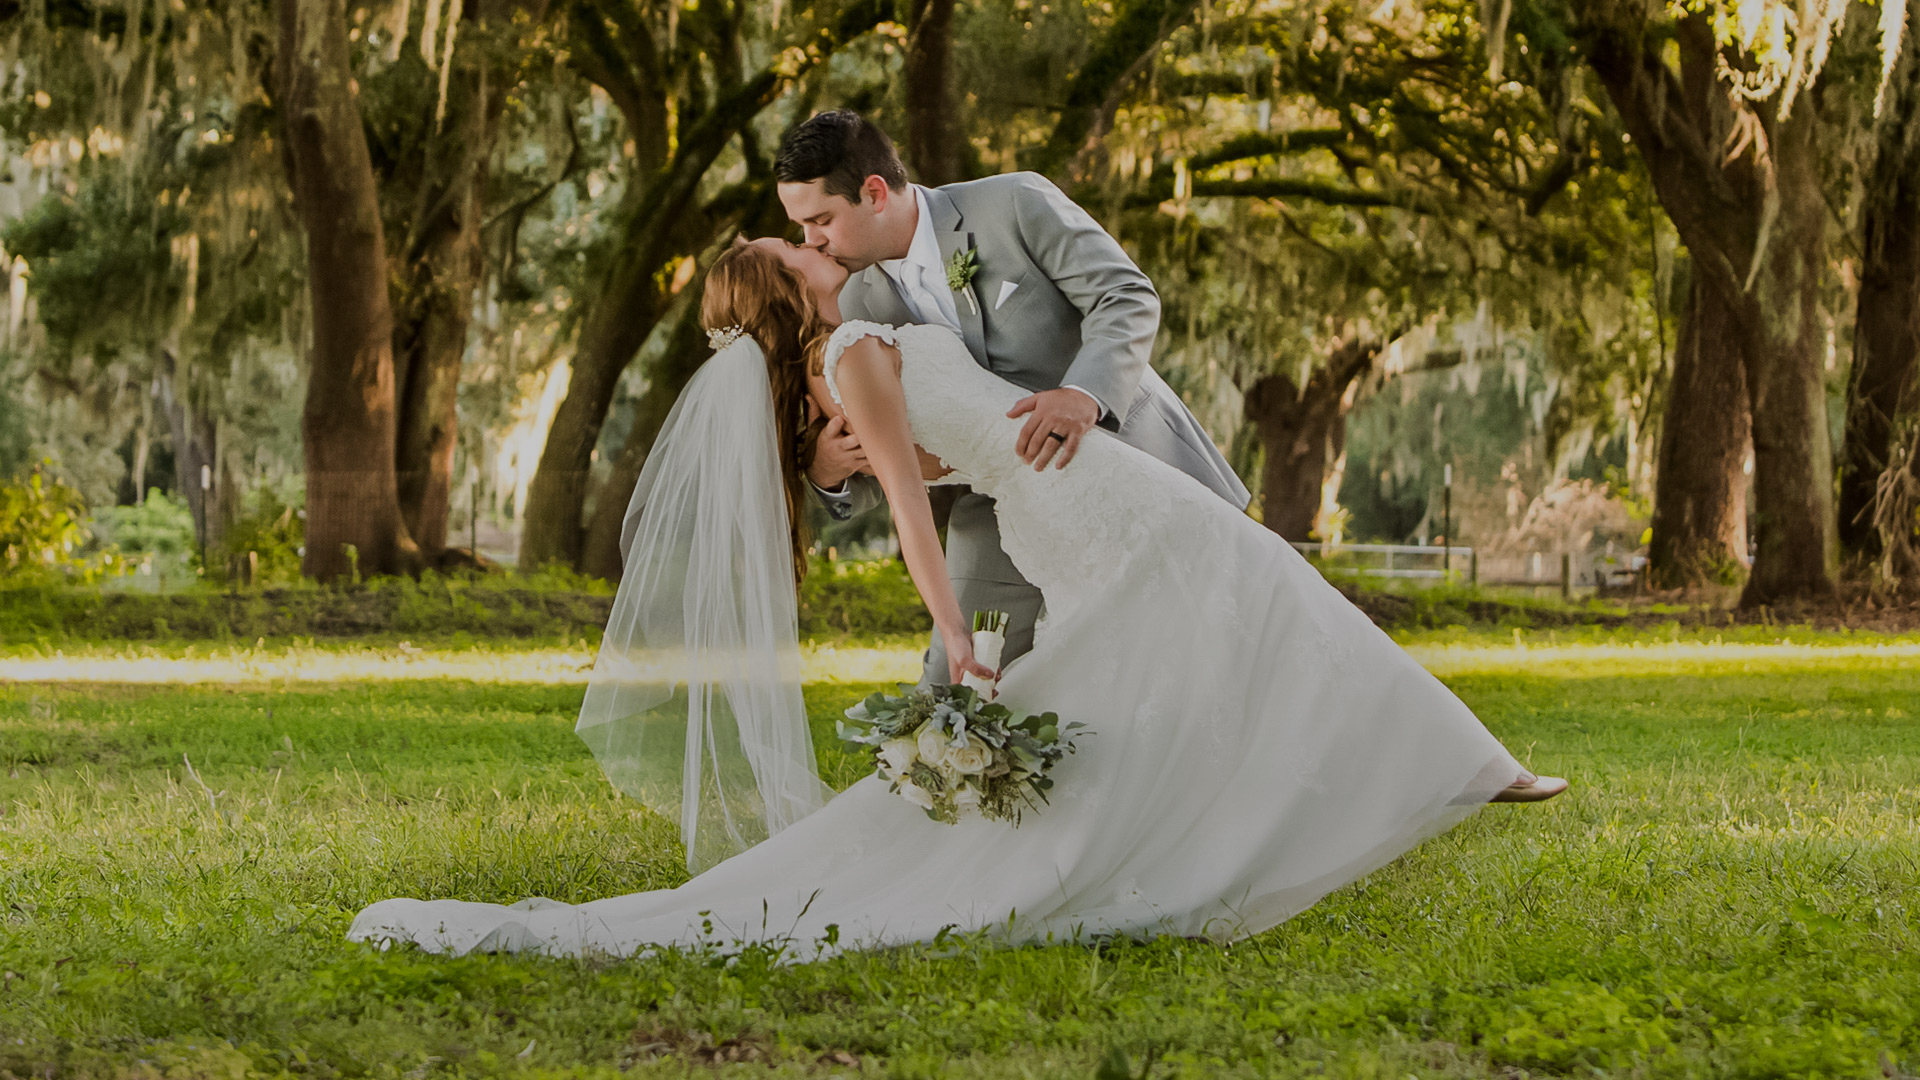 Check portfolios, pricing and availability for wedding photographers in Orlando